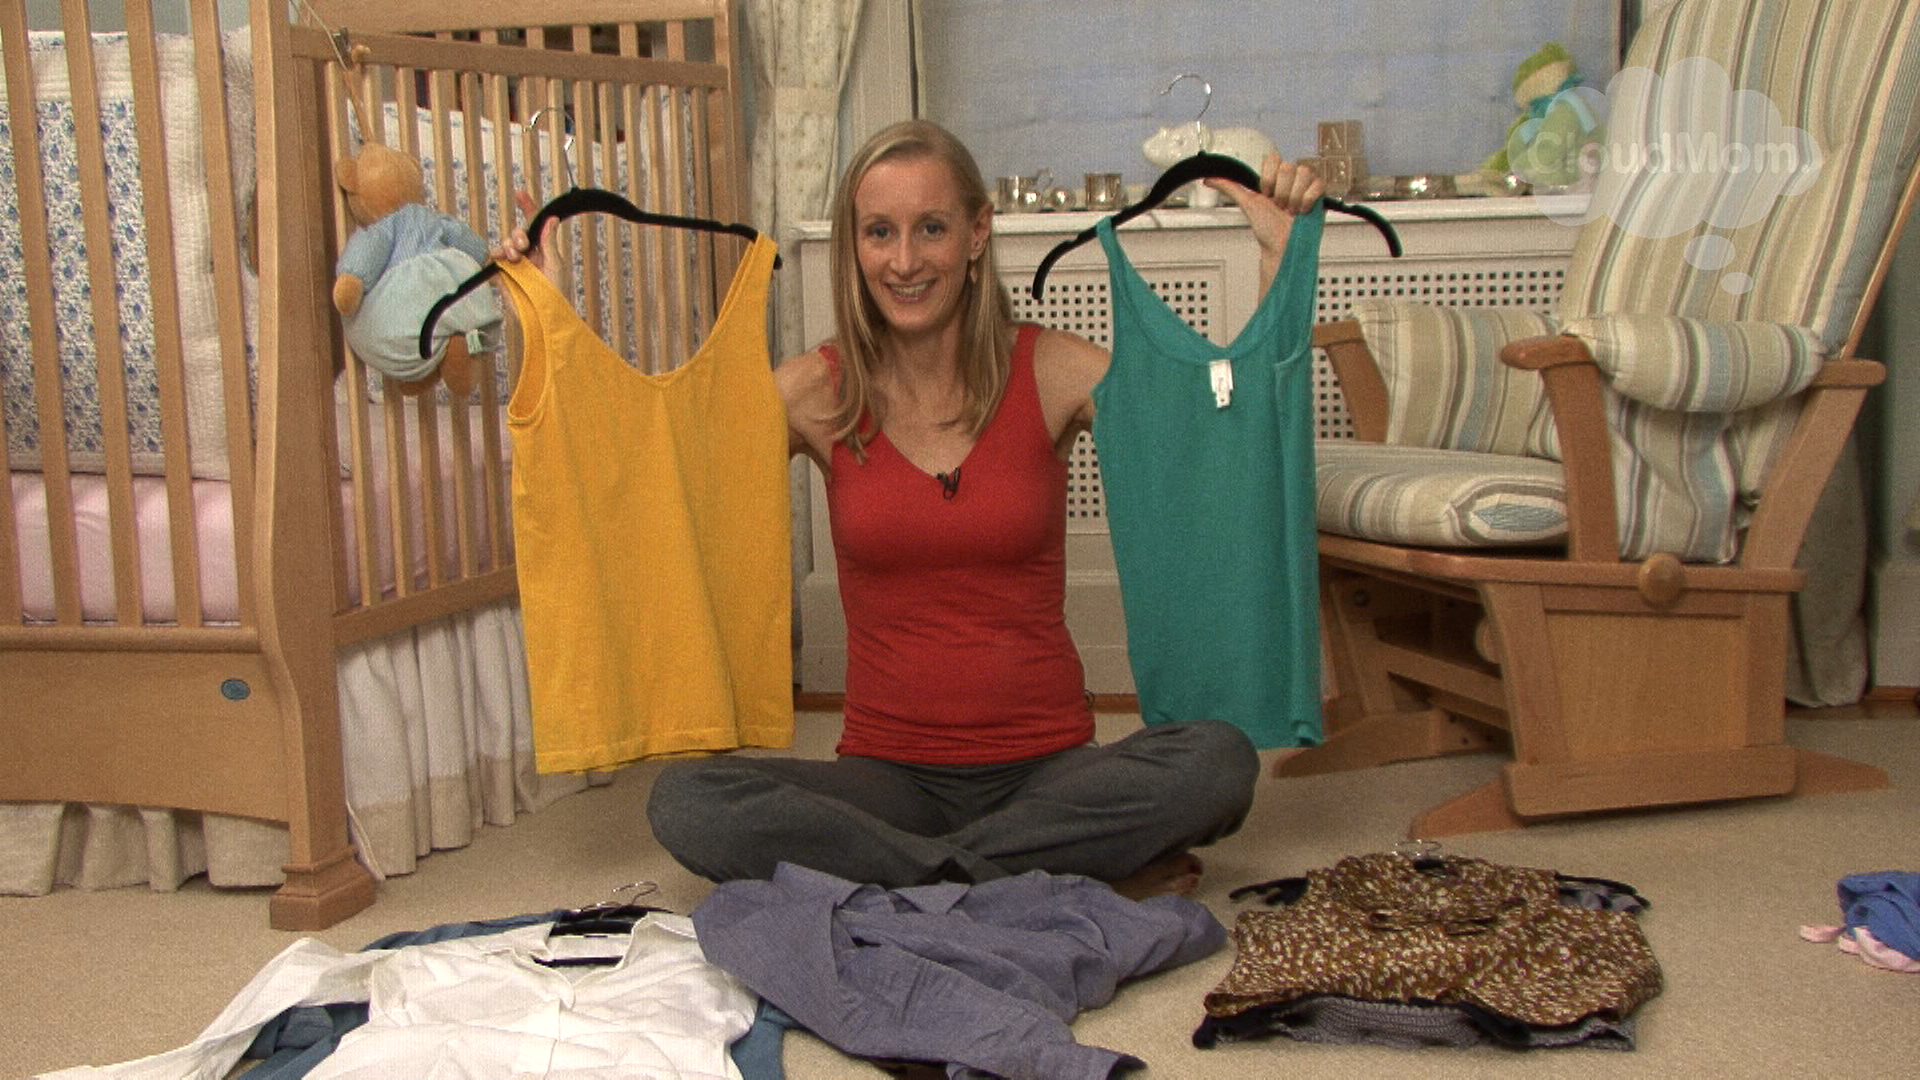 What Are the Best Nursing Clothes?